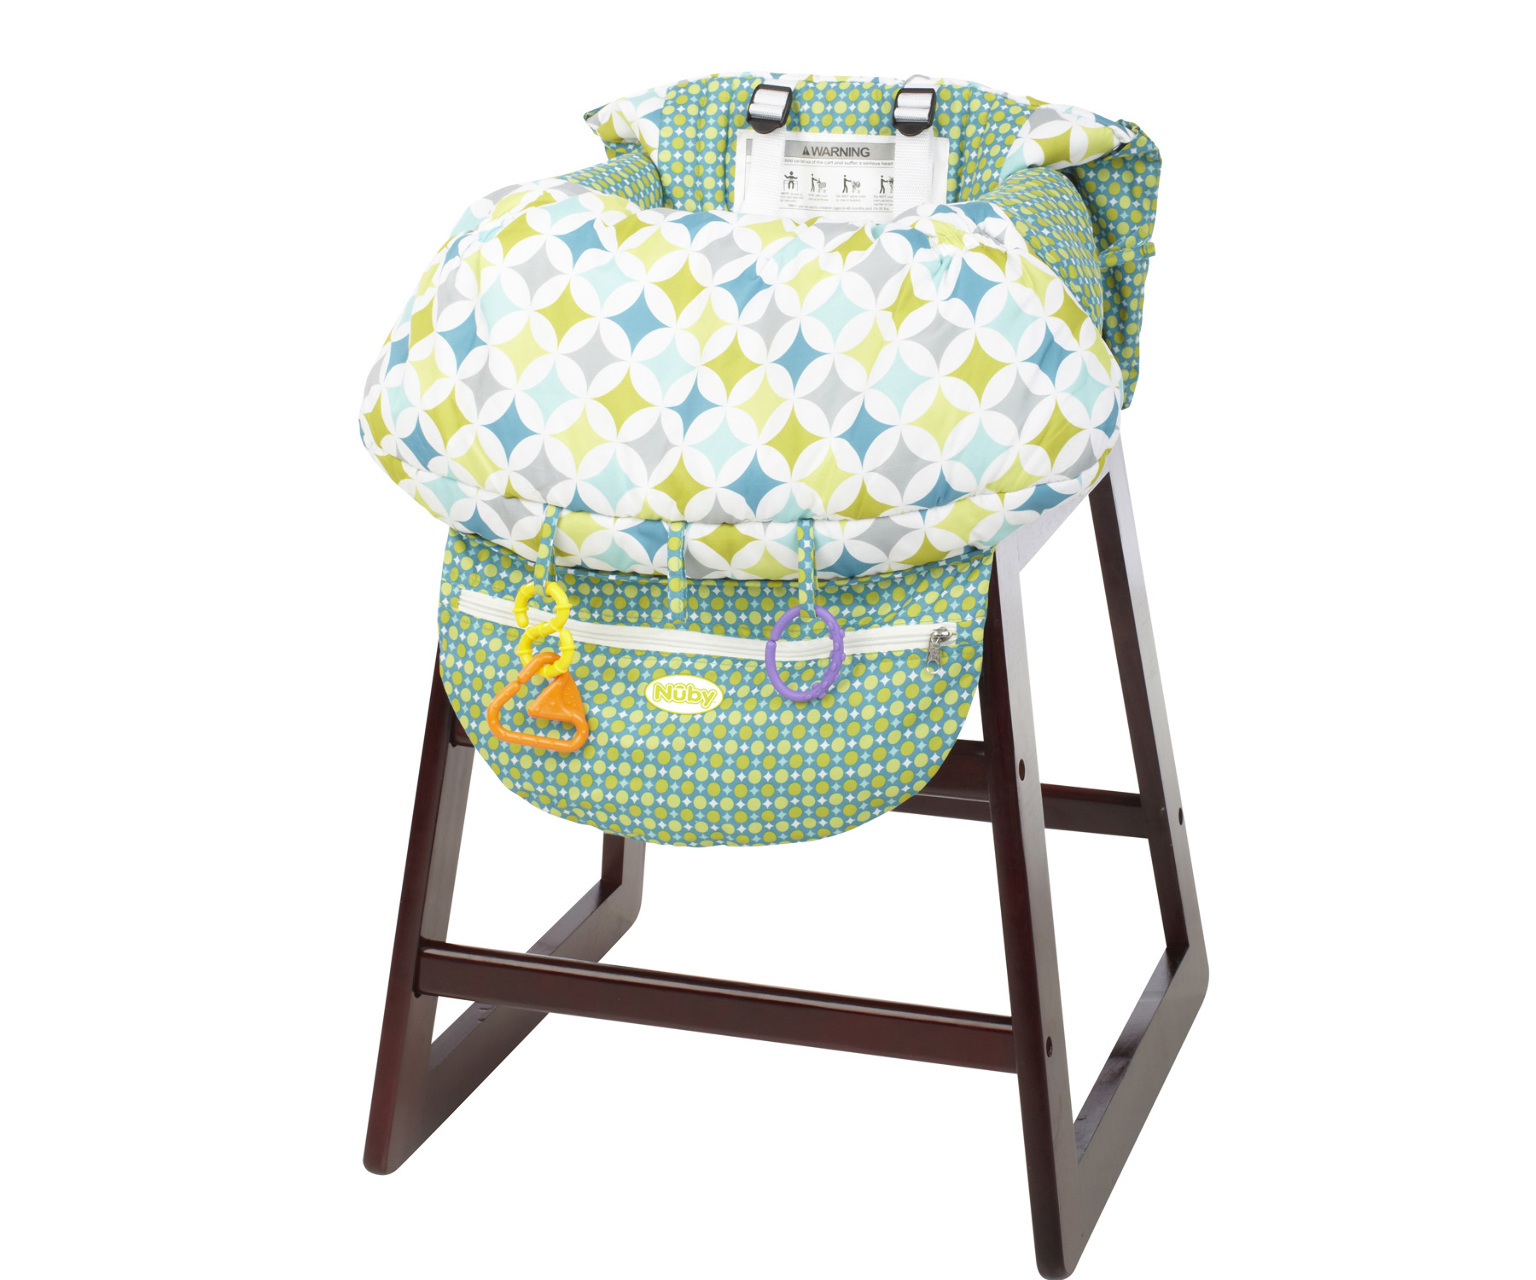 Wholesale Nuby 2-In-1 Shopping Cart and High Chair Cover(8x$24.10) Sold in lots of 8 @ $24.10 each. Helps keep child secure, comfortable and germ free Completely covers cart and high chair seat Use it for shopping cart seats, high chairs, car seats, your stroller or even your lap. The Cover catches food crumbs or dropped toys, and of course it can be easily wiped down and washed. Easy to install, simply pull the cover out of the integrated attached carry bag, shake it out and lay it into the seat. Buckle Up and You're Done! The integrated storage pouch doubles as a way to store the cart cover when not in use, and becomes a convenient pocket while shopping.